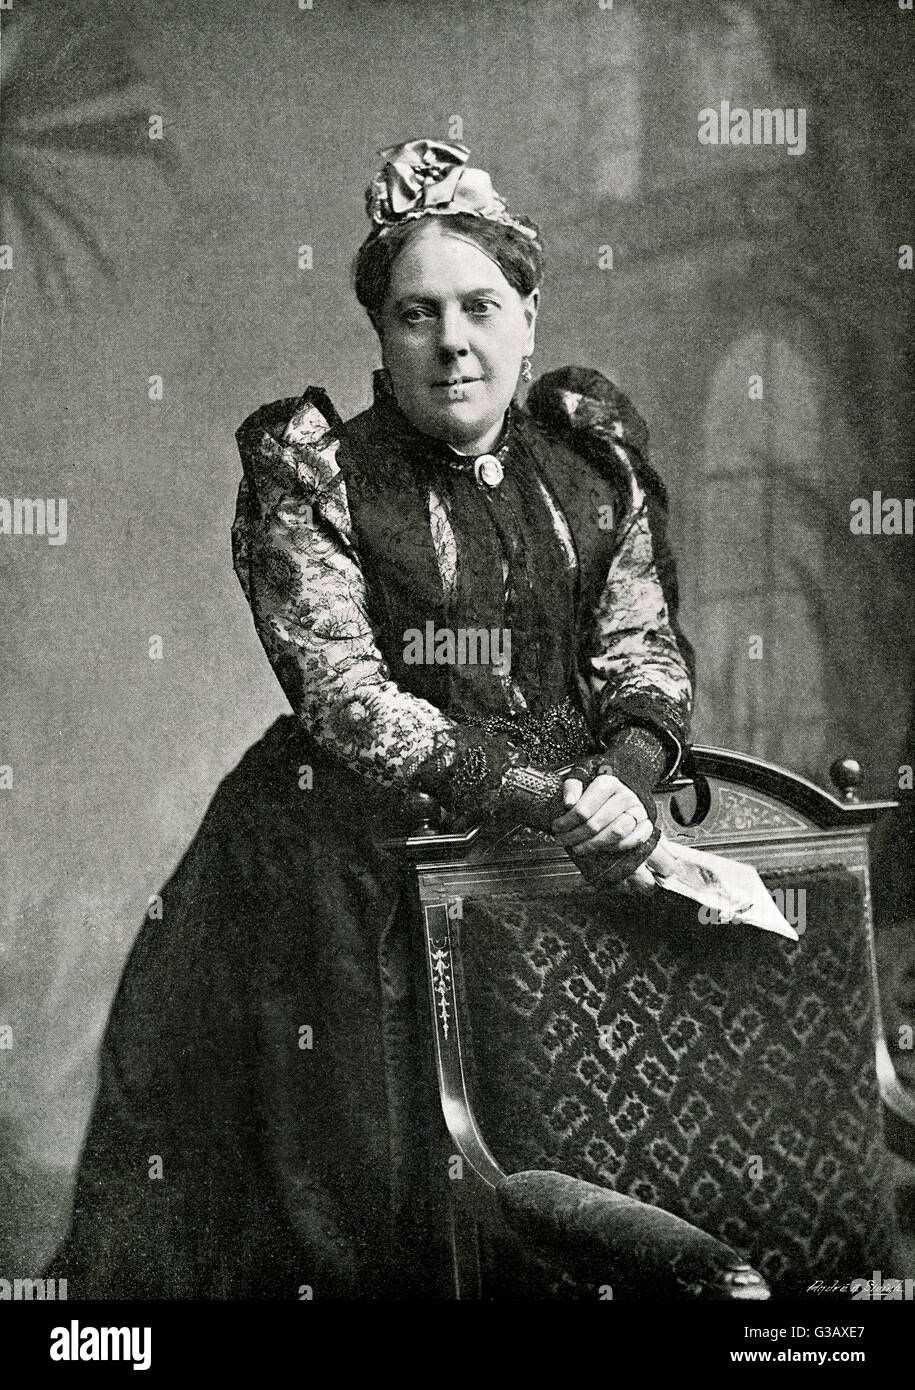 MRS ALEXANDER  author of some 50 novels under  the name of 'MRS ALEXANDER'       Date: 1818 - 1895 - Stock Image